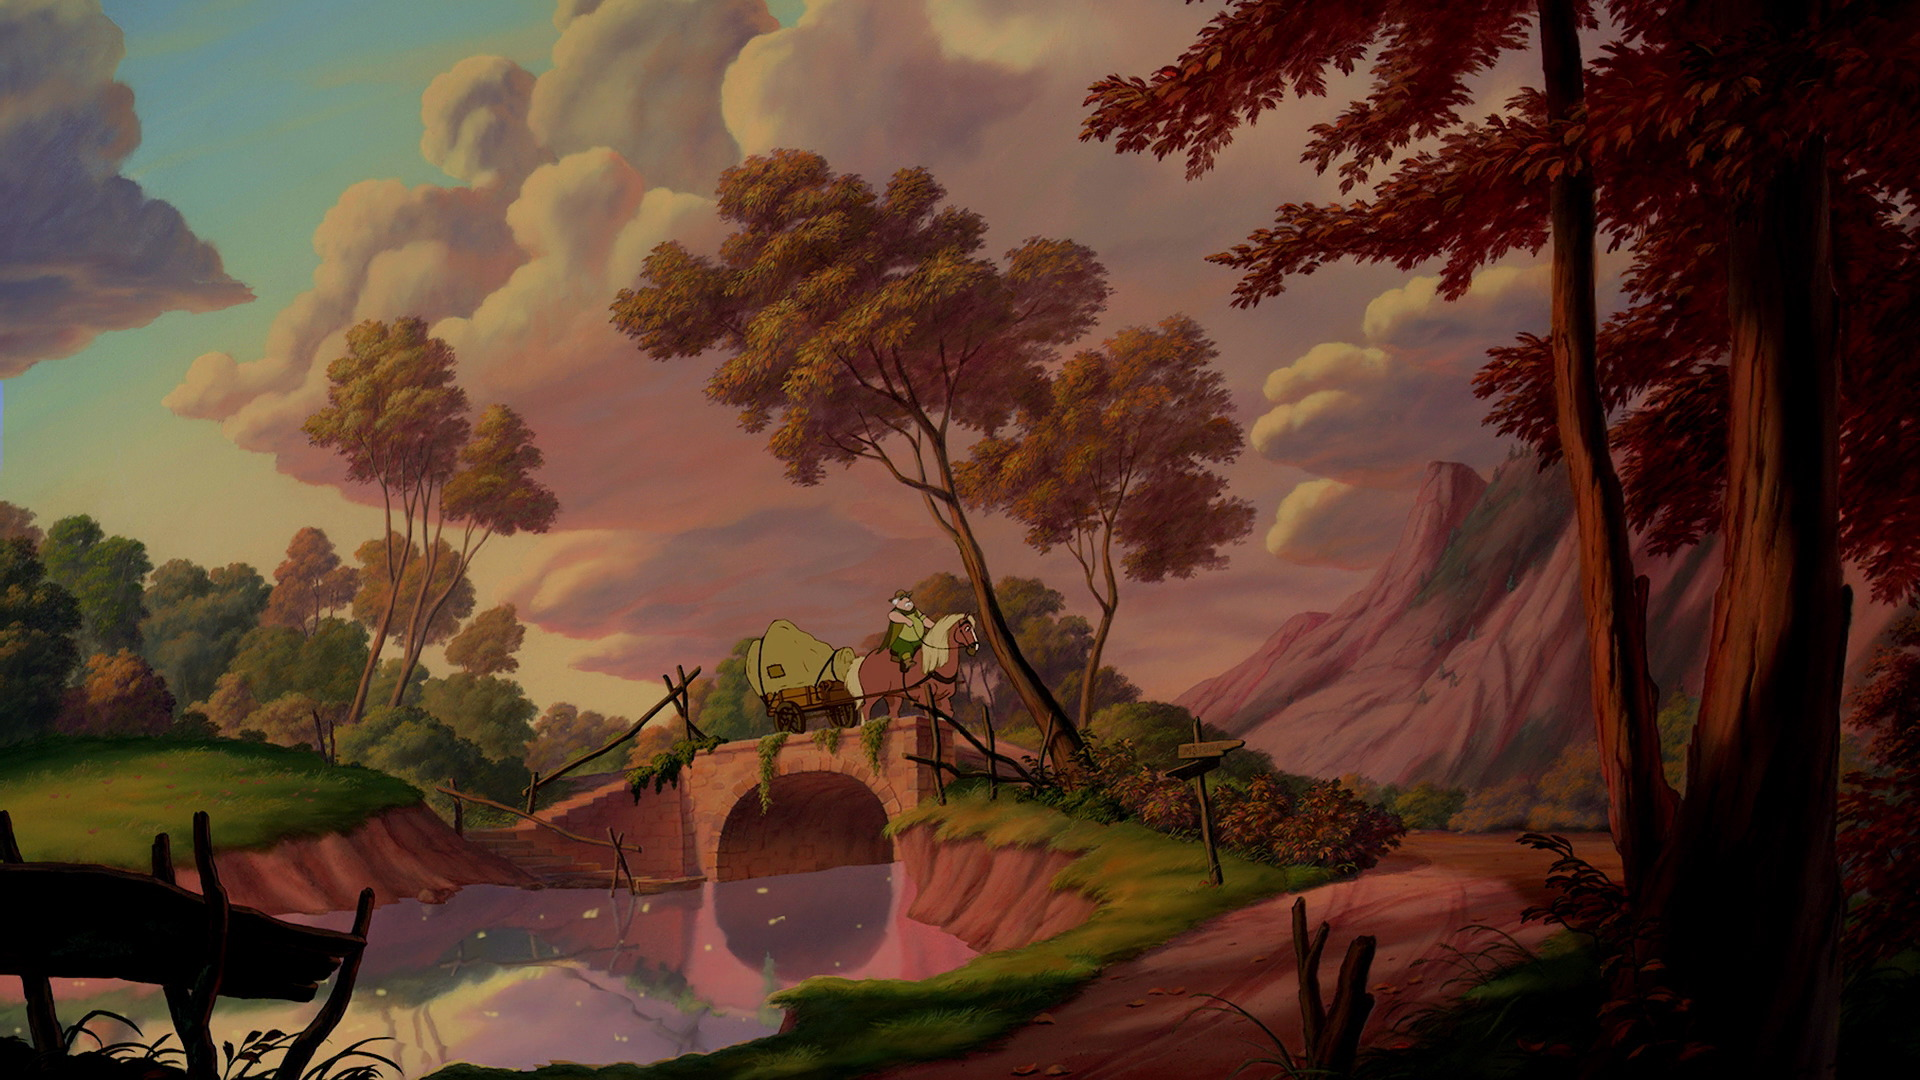 beauty-and-the-beast-disneyscreencaps.com-1051.jpg